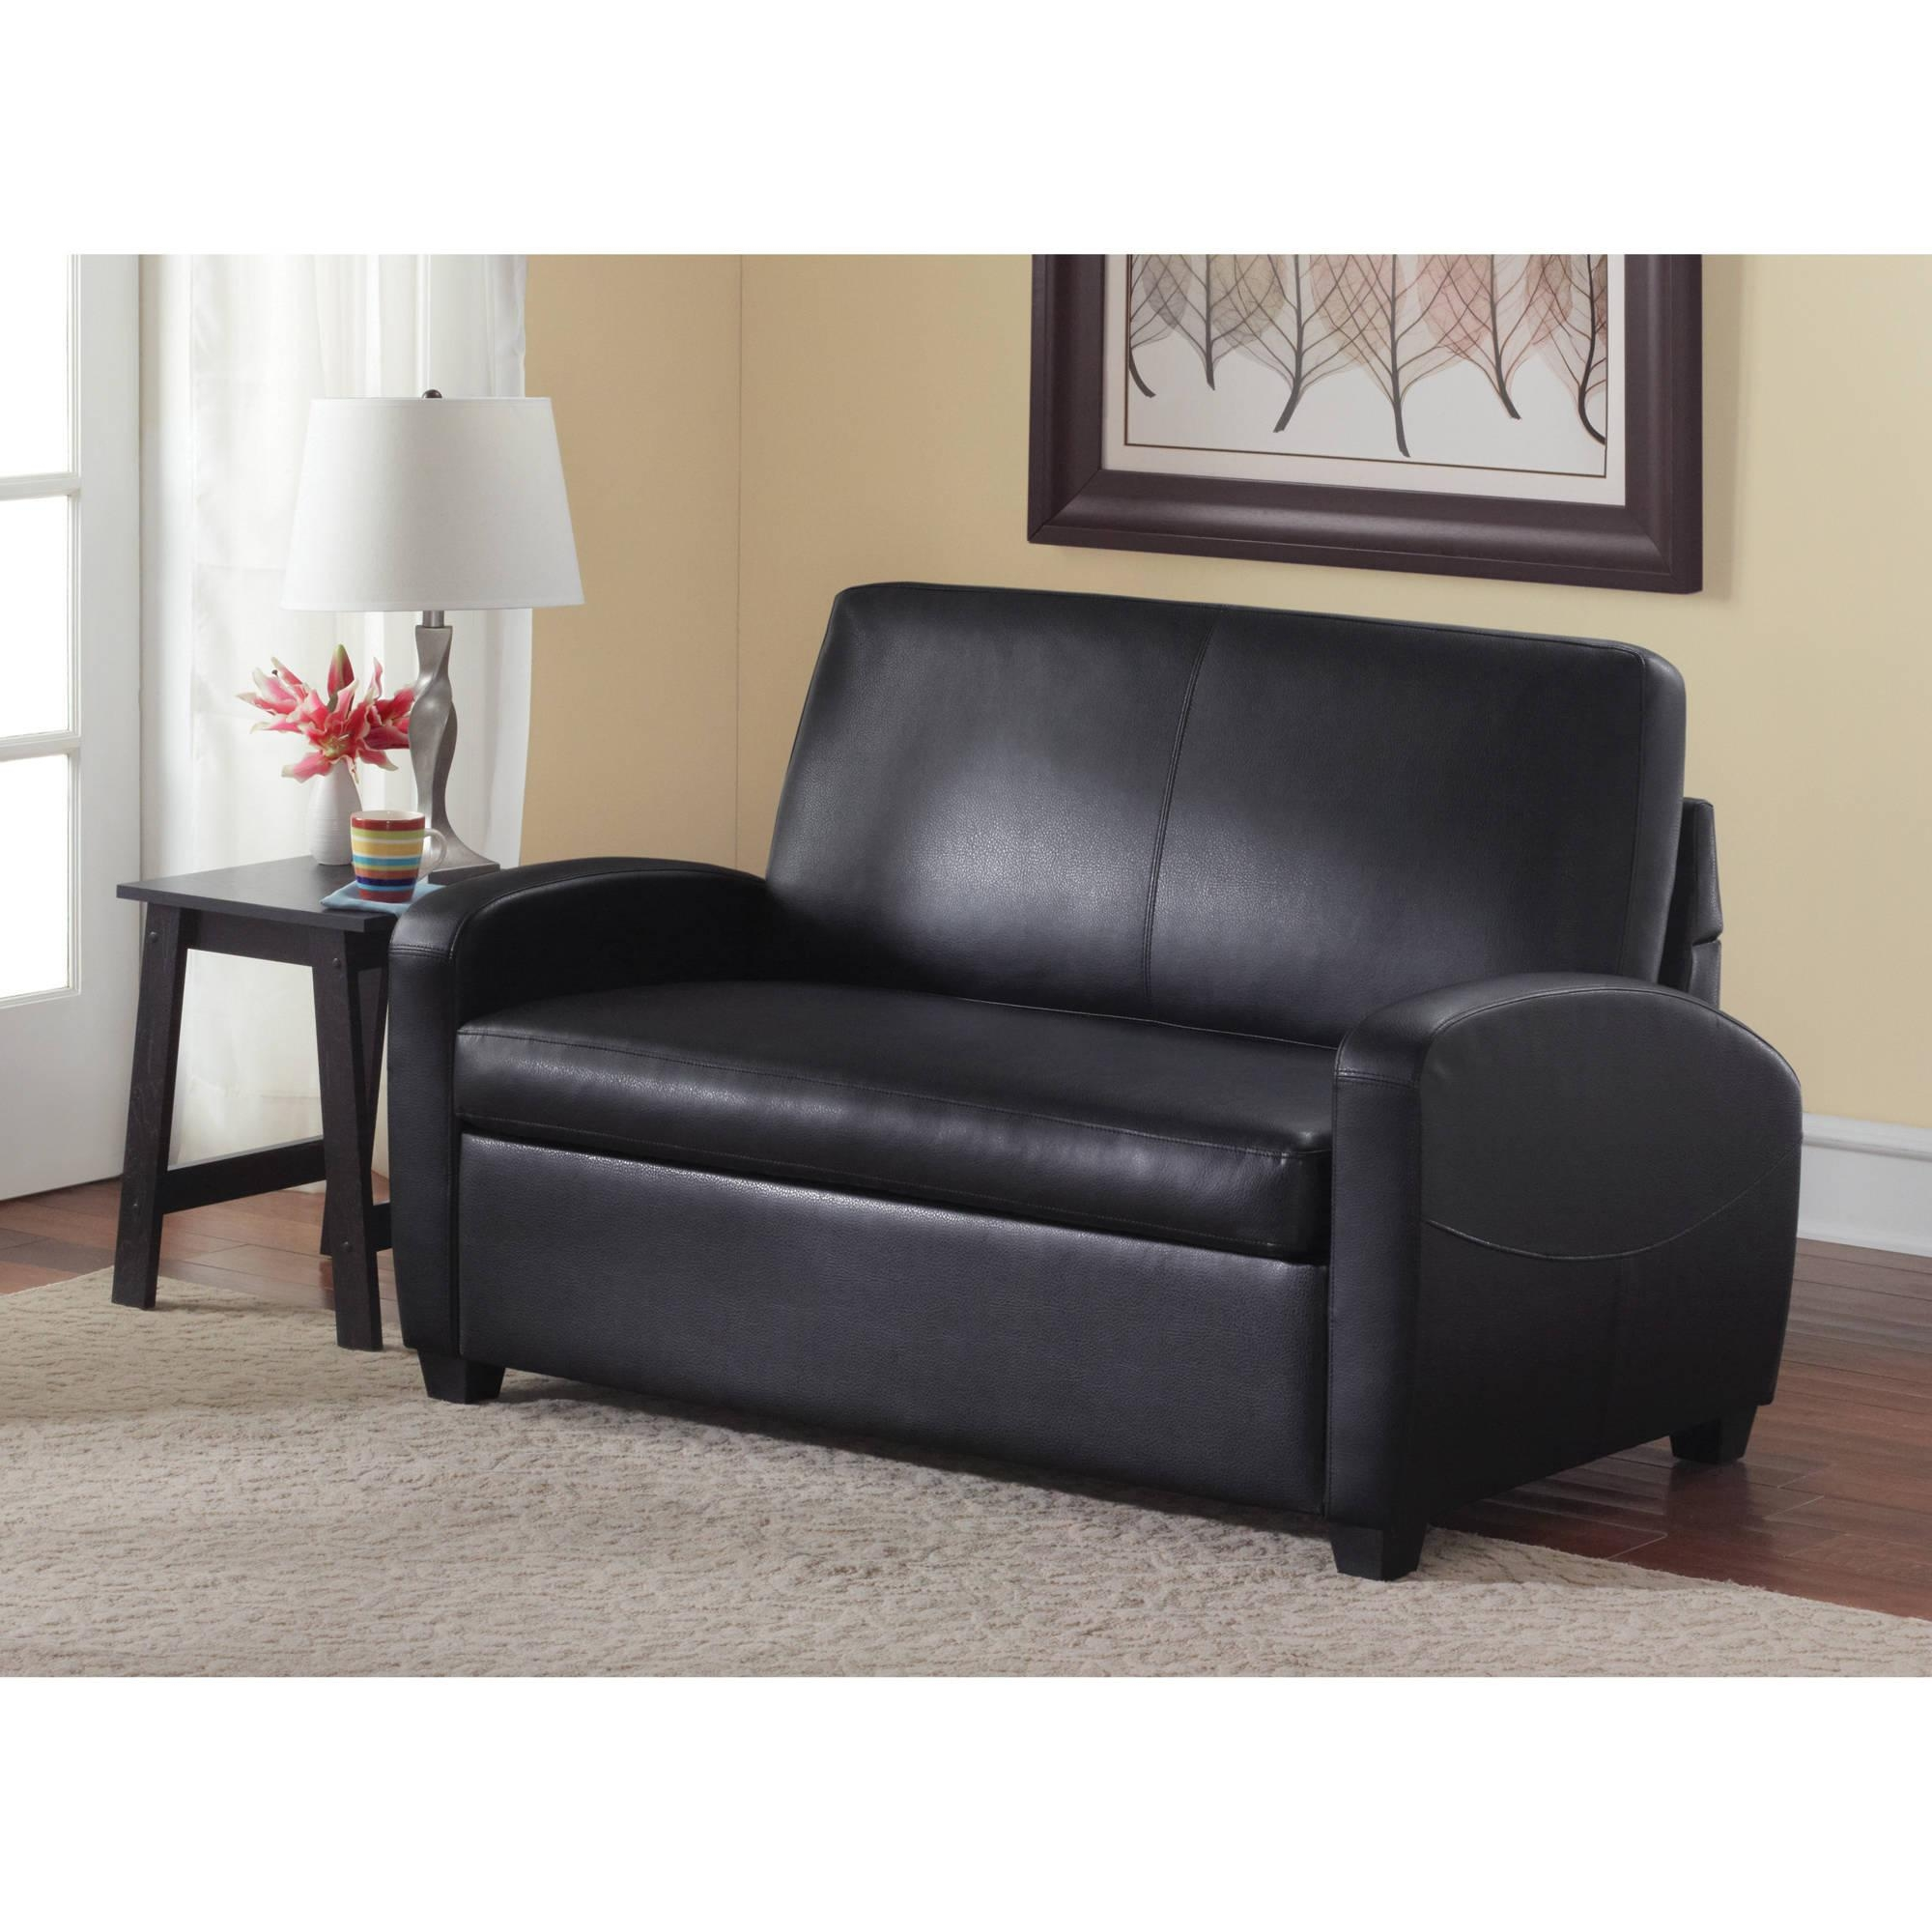 Mainstays Sofa Sleeper, Black – Walmart Pertaining To Wallmart Sofa (Image 16 of 20)